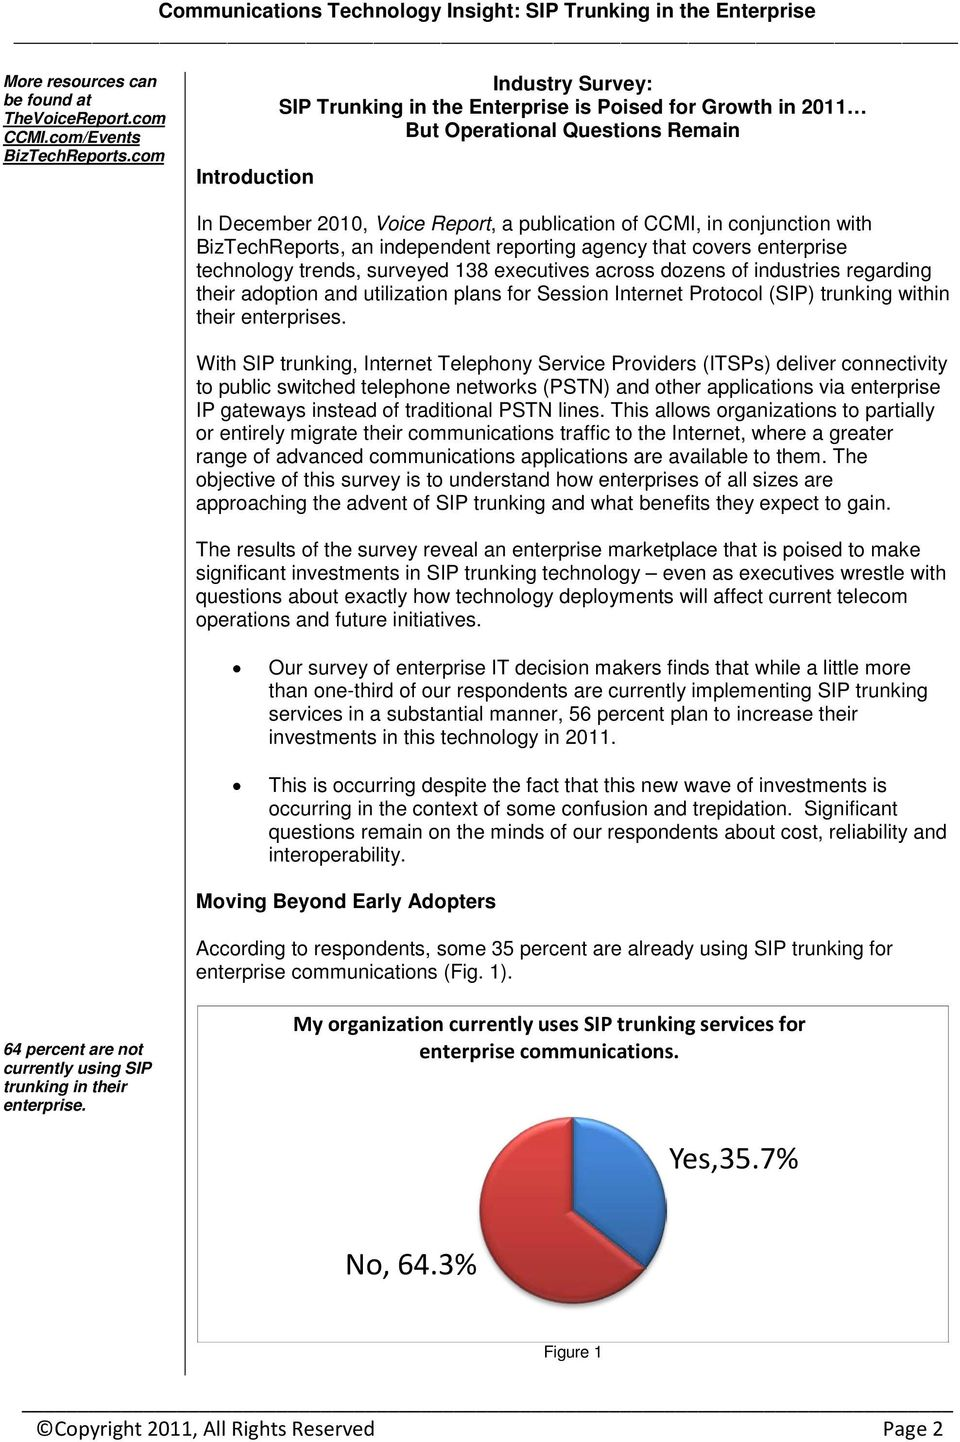 with BizTechReports, an independent reporting agency that covers enterprise technology trends, surveyed 138 executives across dozens of industries regarding their adoption and utilization plans for